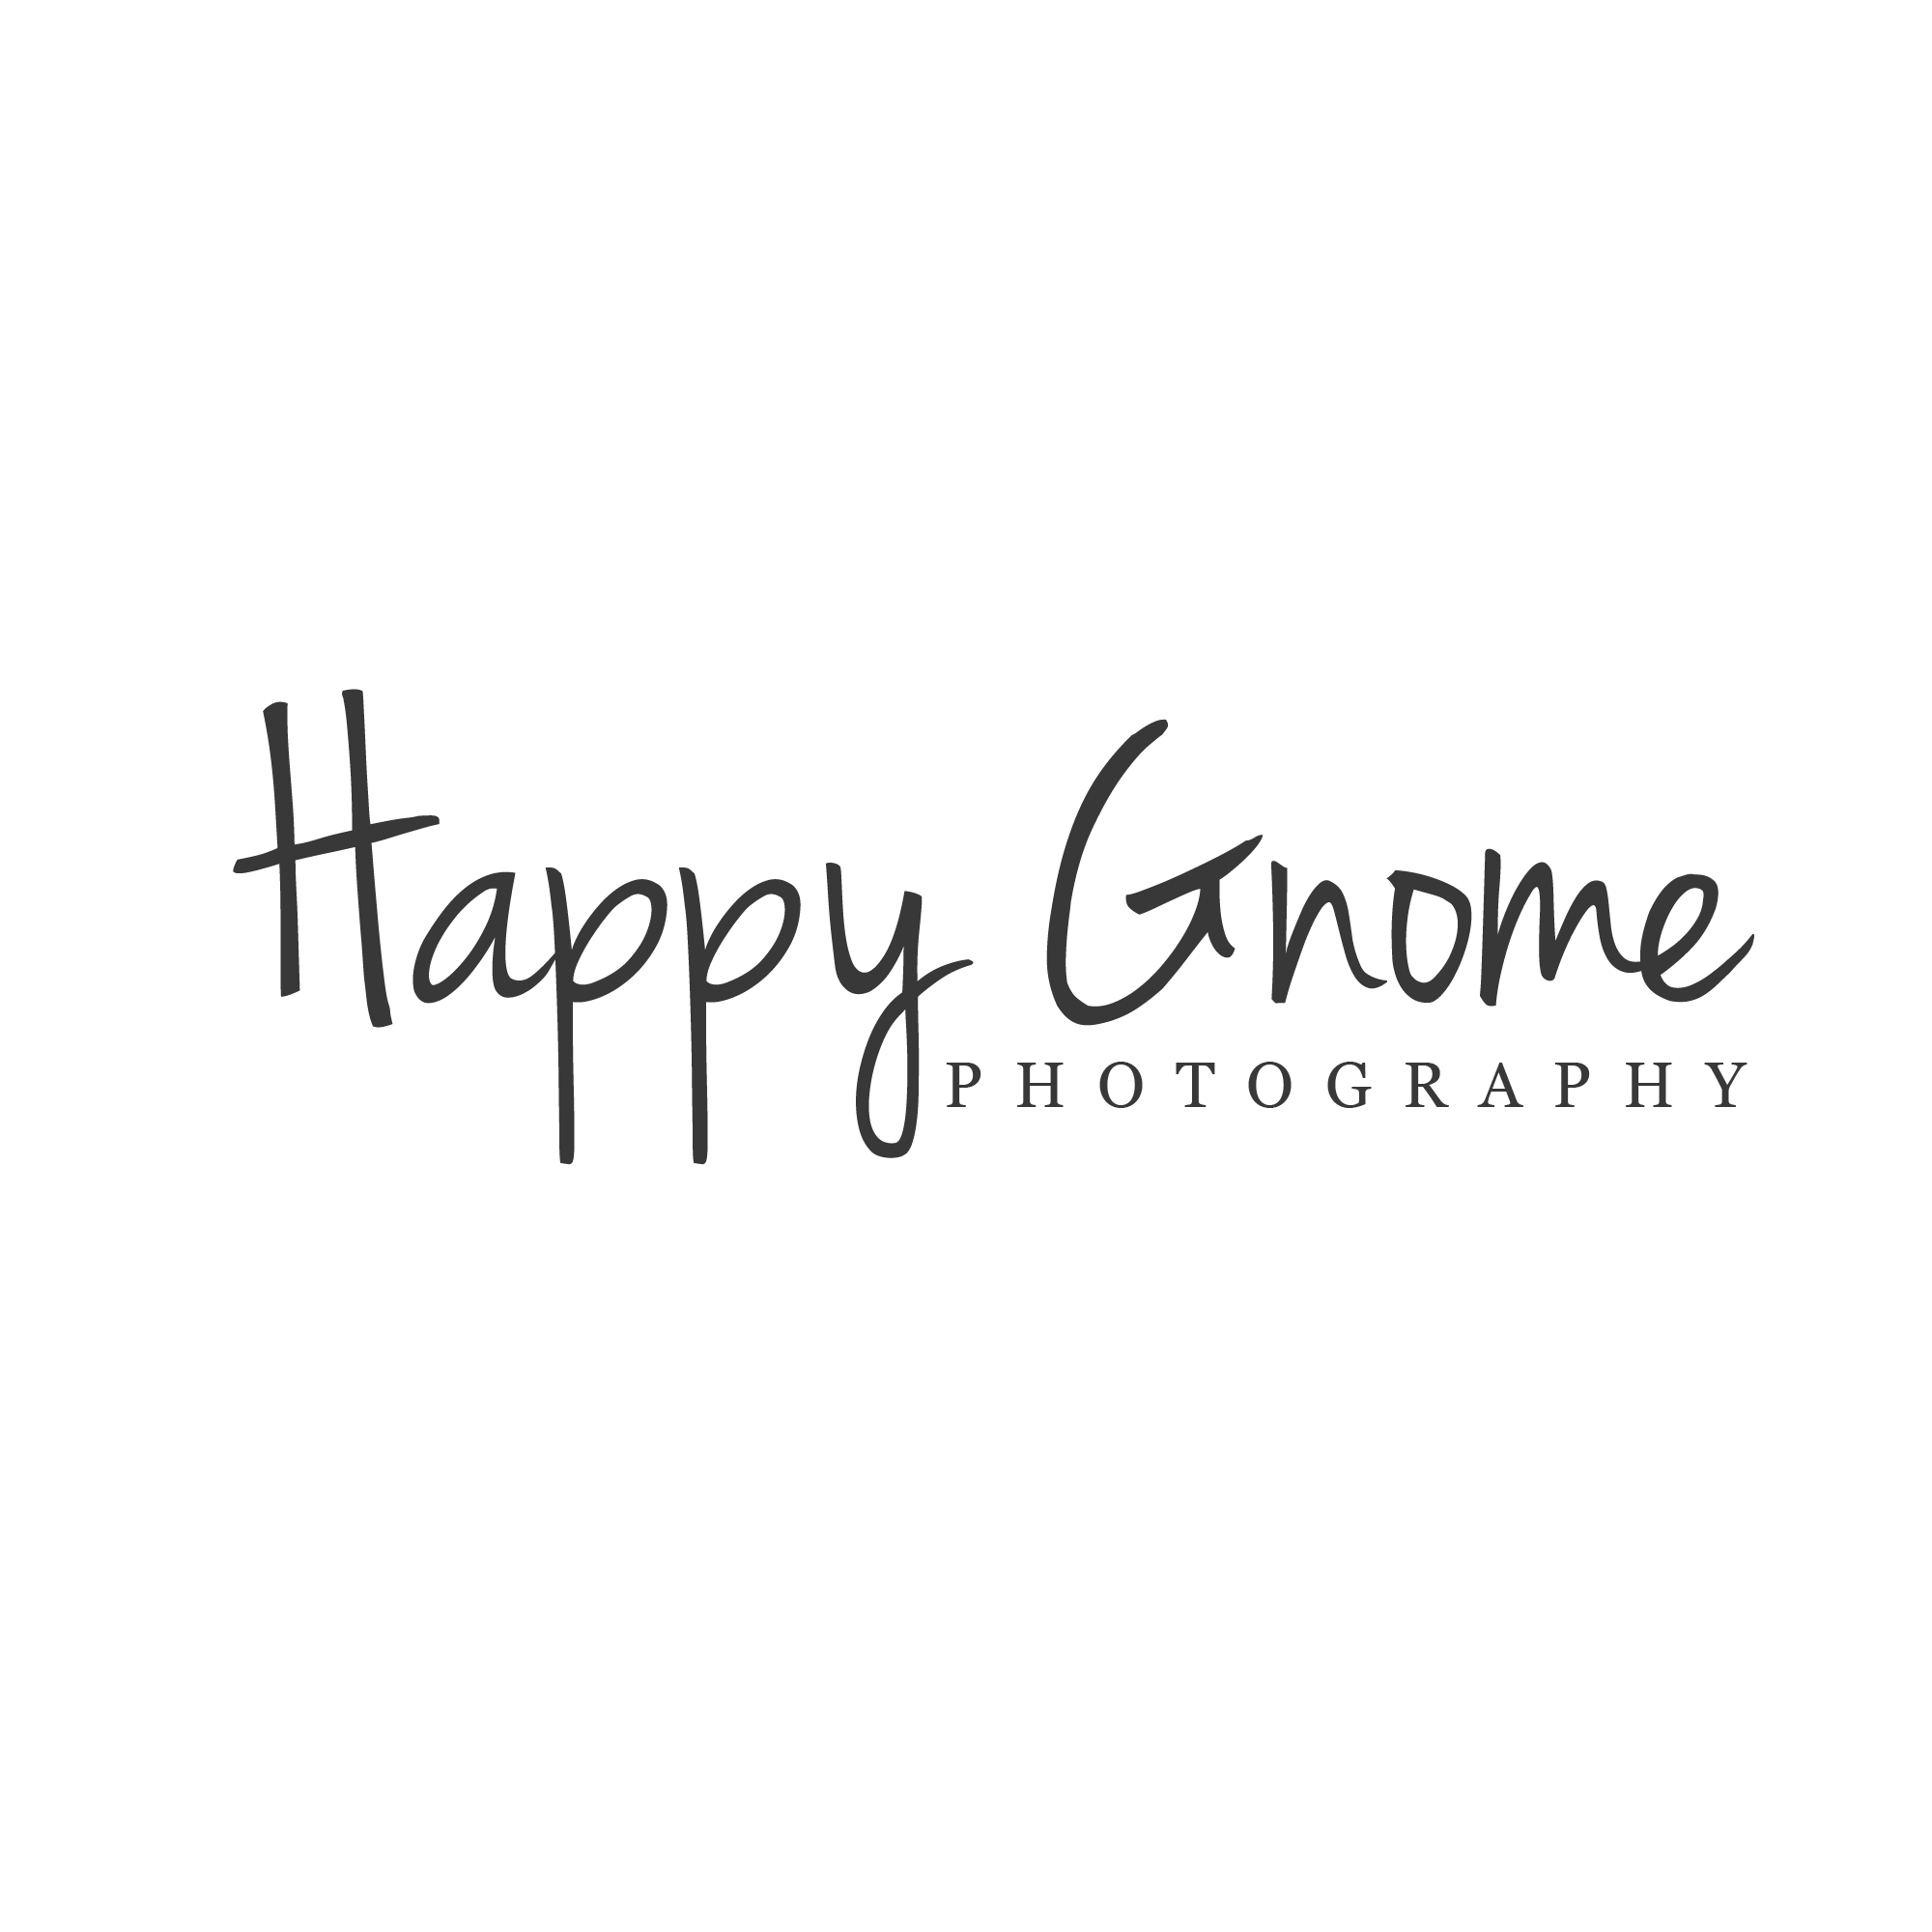 Happy Gnome Photography - Real Couples. Real Love. Real Fun.happygnomephotography.comServices Offered:Wedding and Boudoir PhotographyServing:Wisconsin